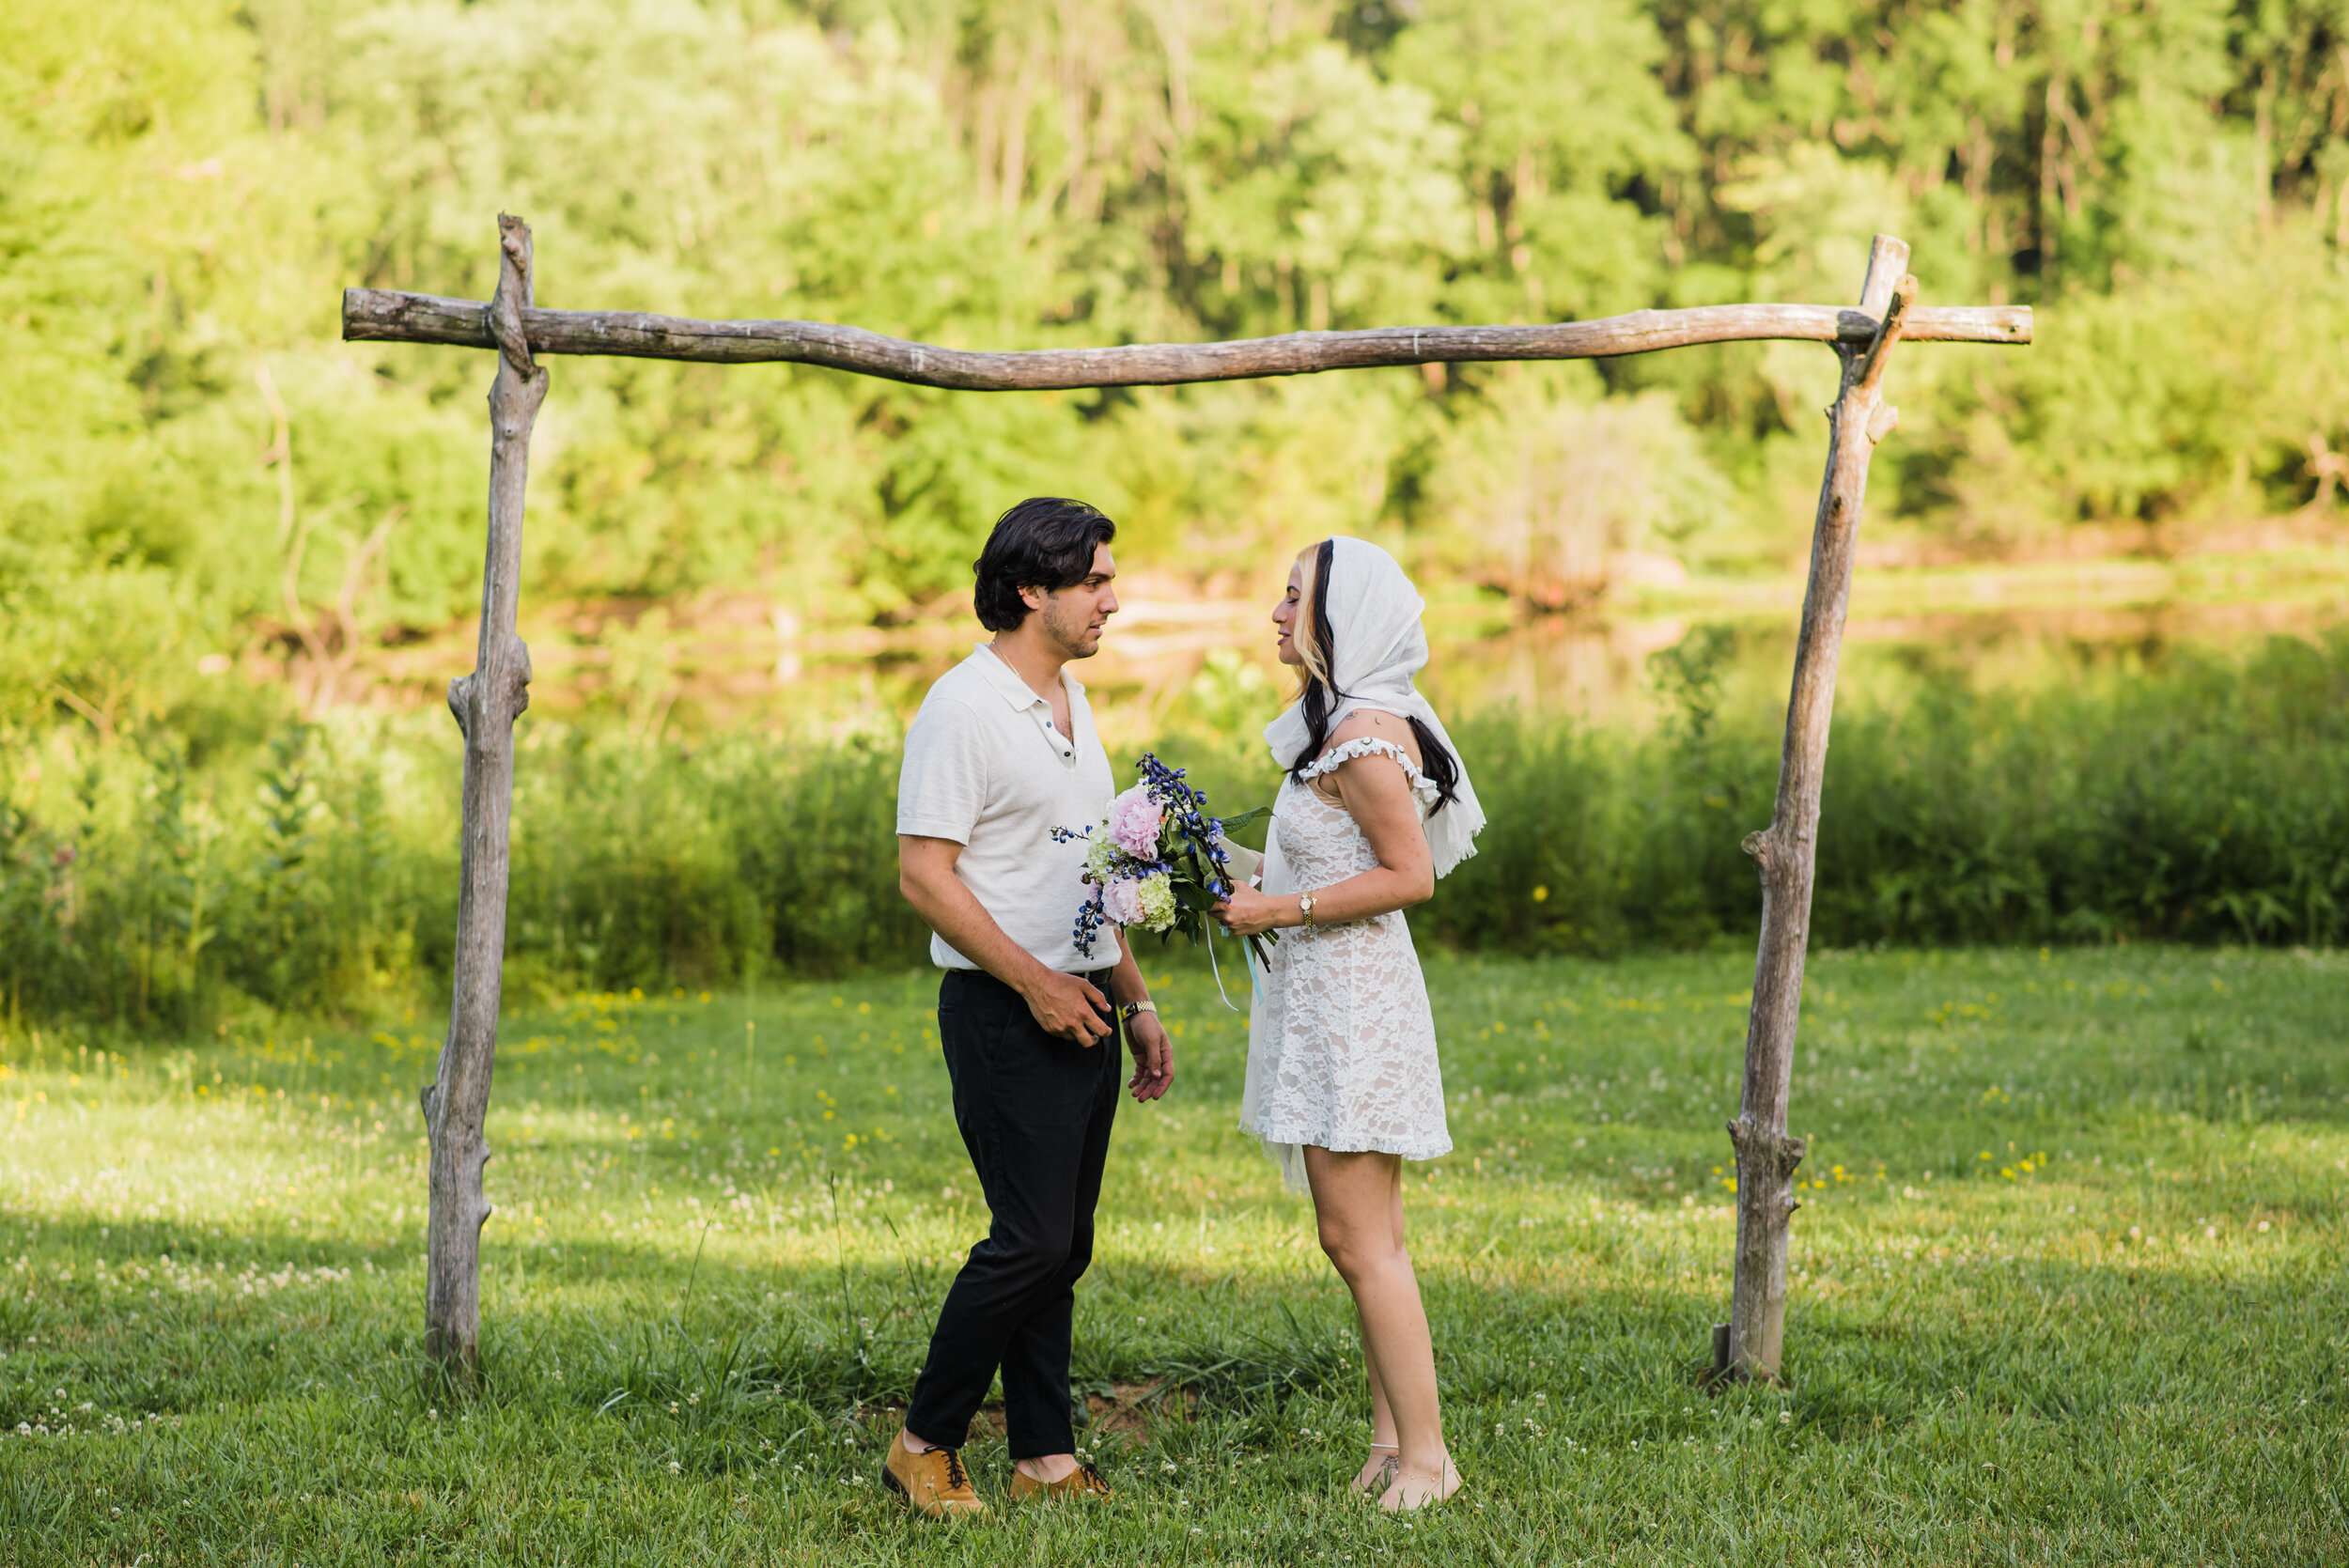 Wedding couple exchanging vows under a rustic arch outdoors.